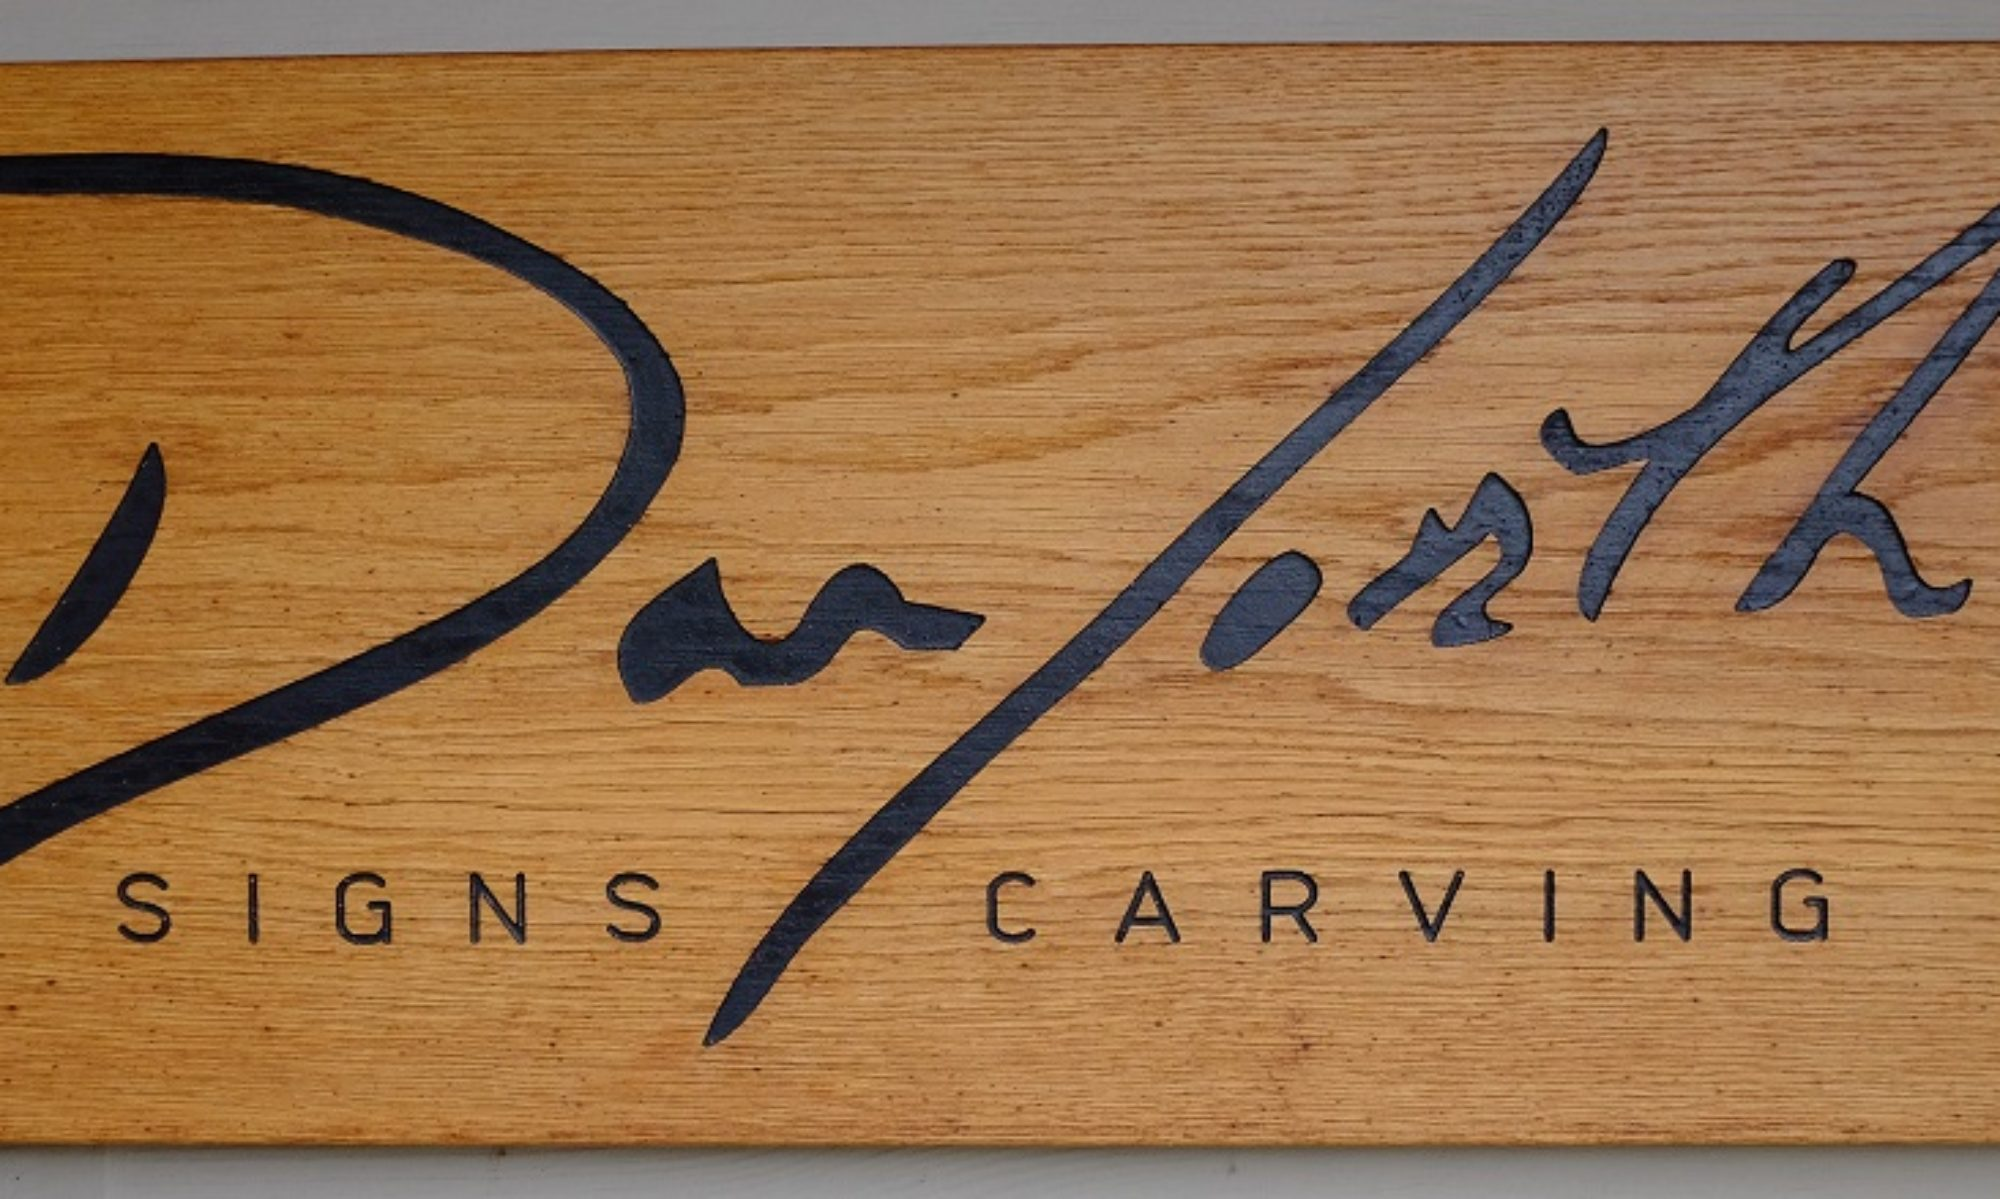 Danforth Signs & Carving